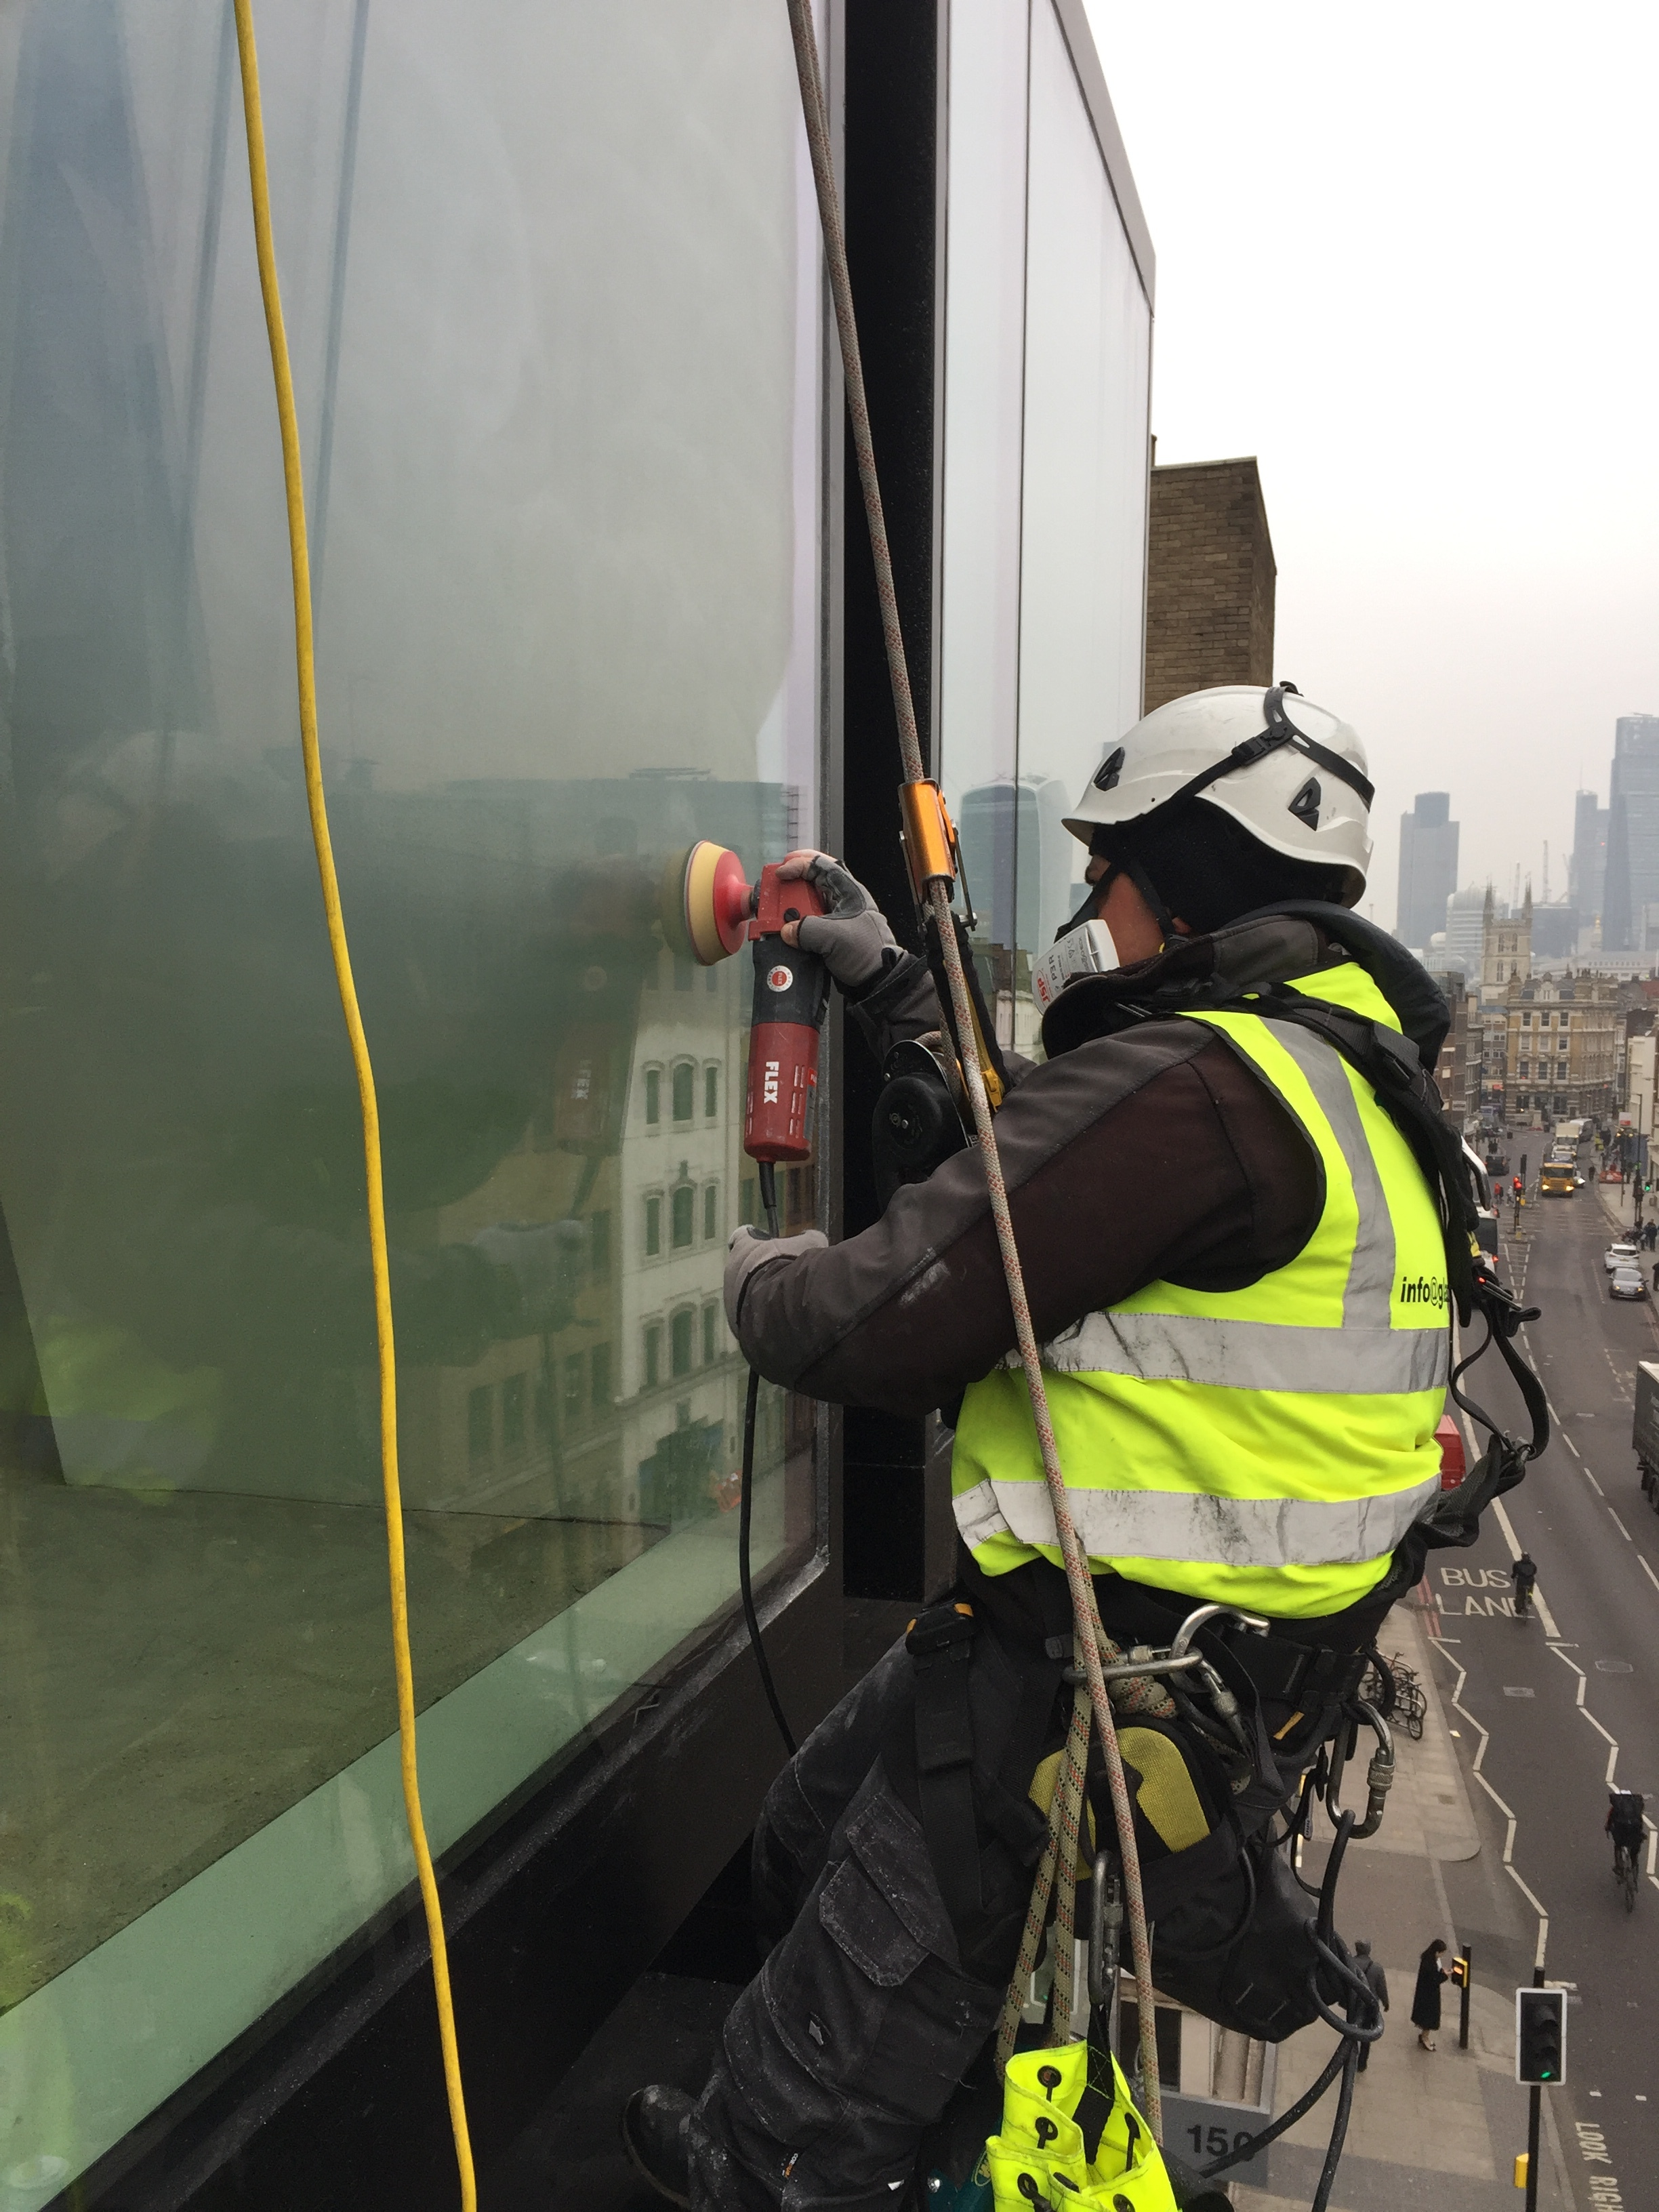 Polishing of entire structurally bonded glass via abseil.